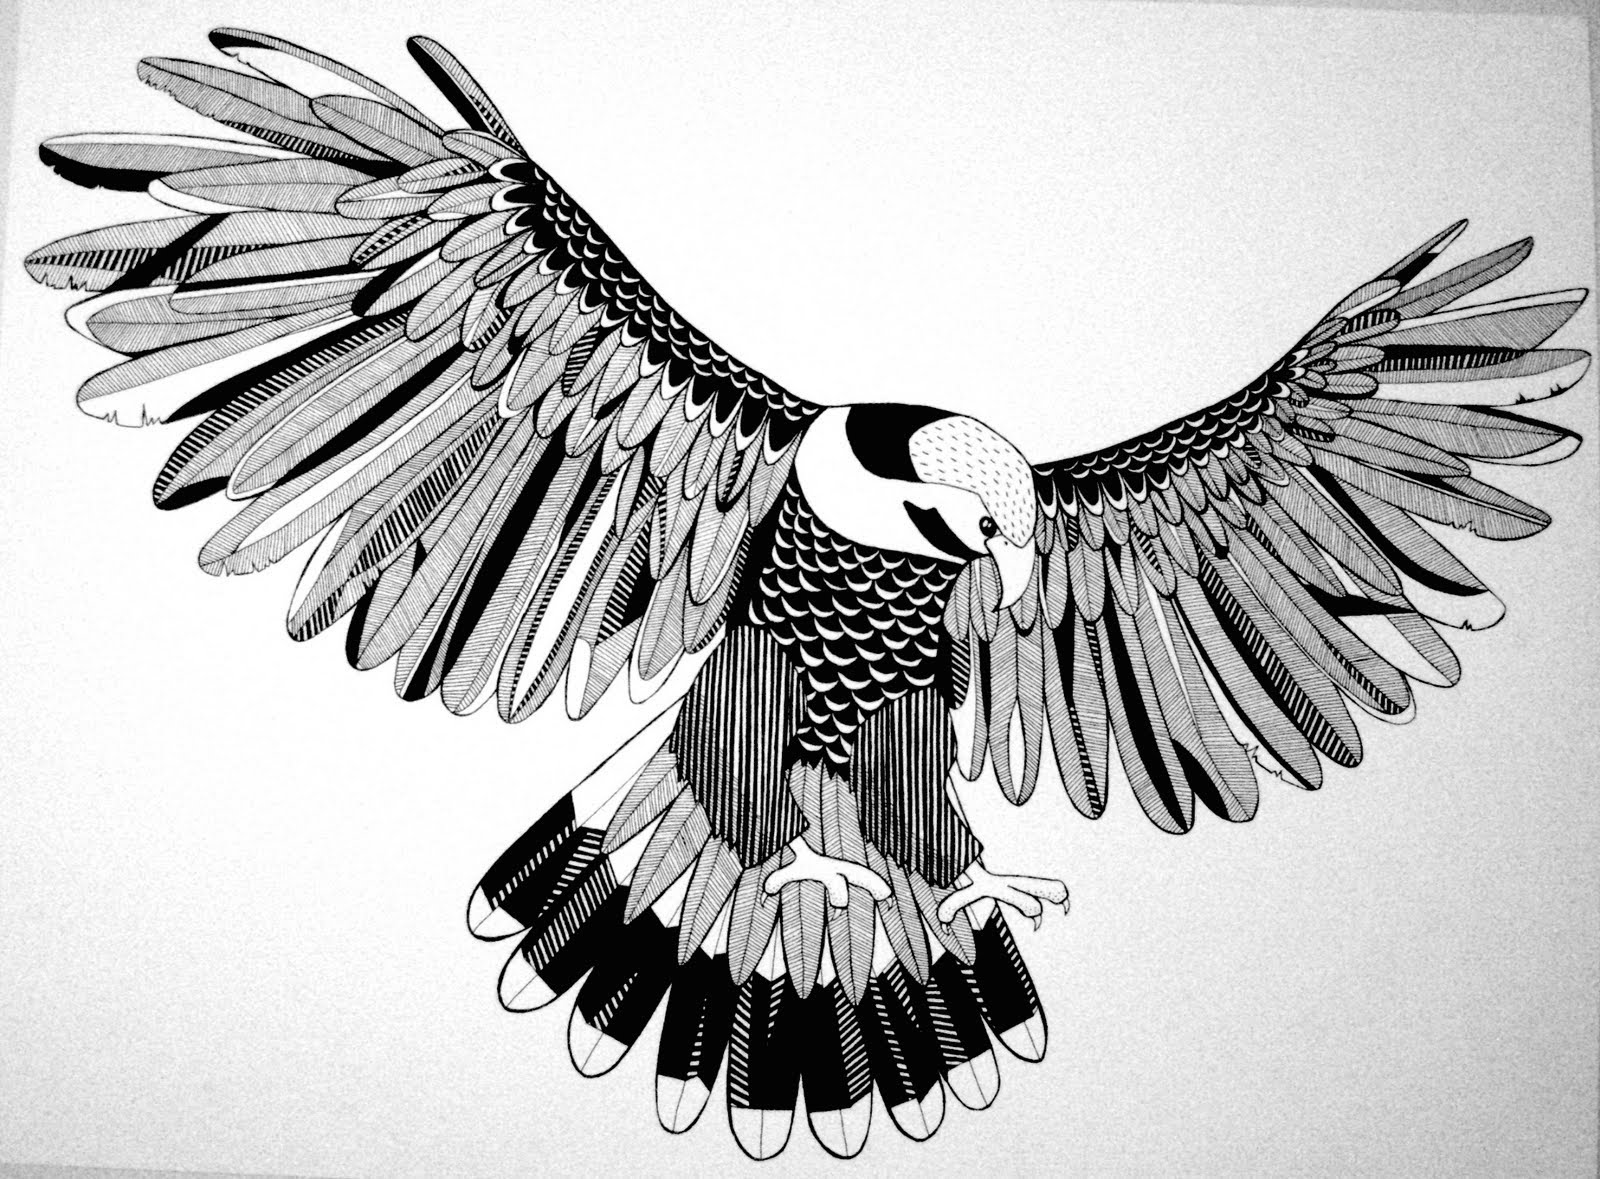 'Hawk' Illustration Pen on Paper.jpg